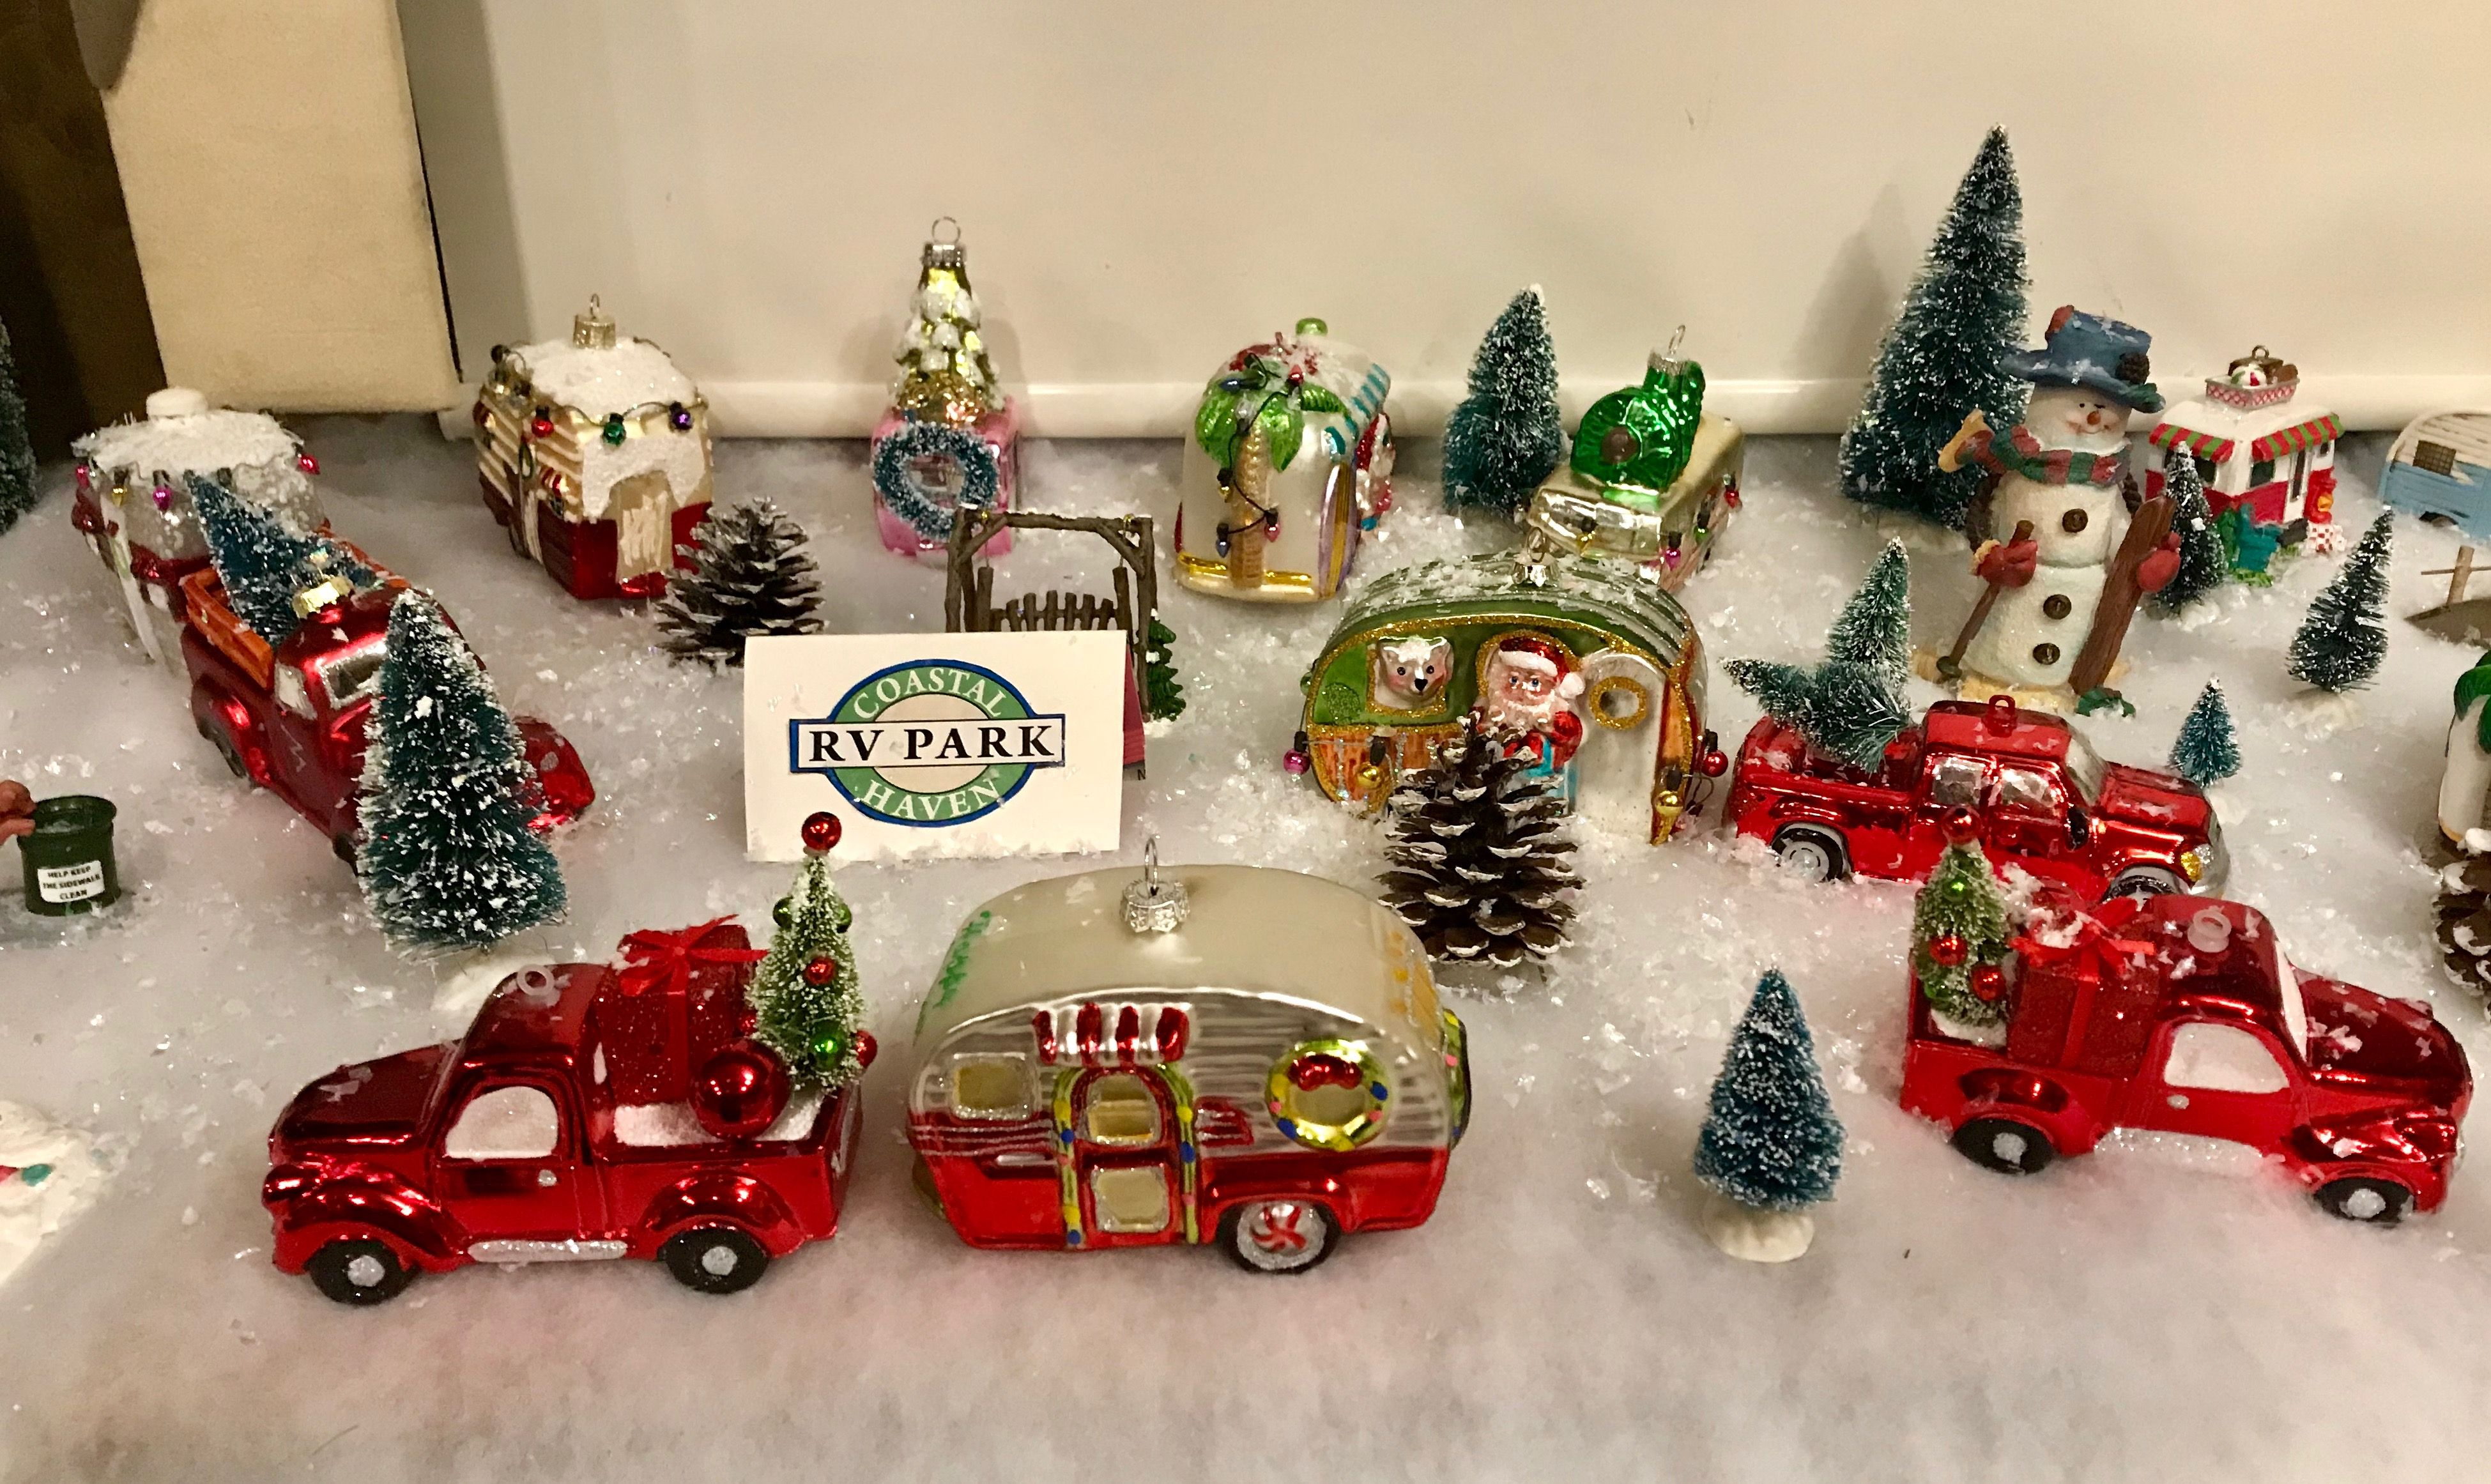 Pin by Theresa Livingston on My christmas camper decorations | Pinterest